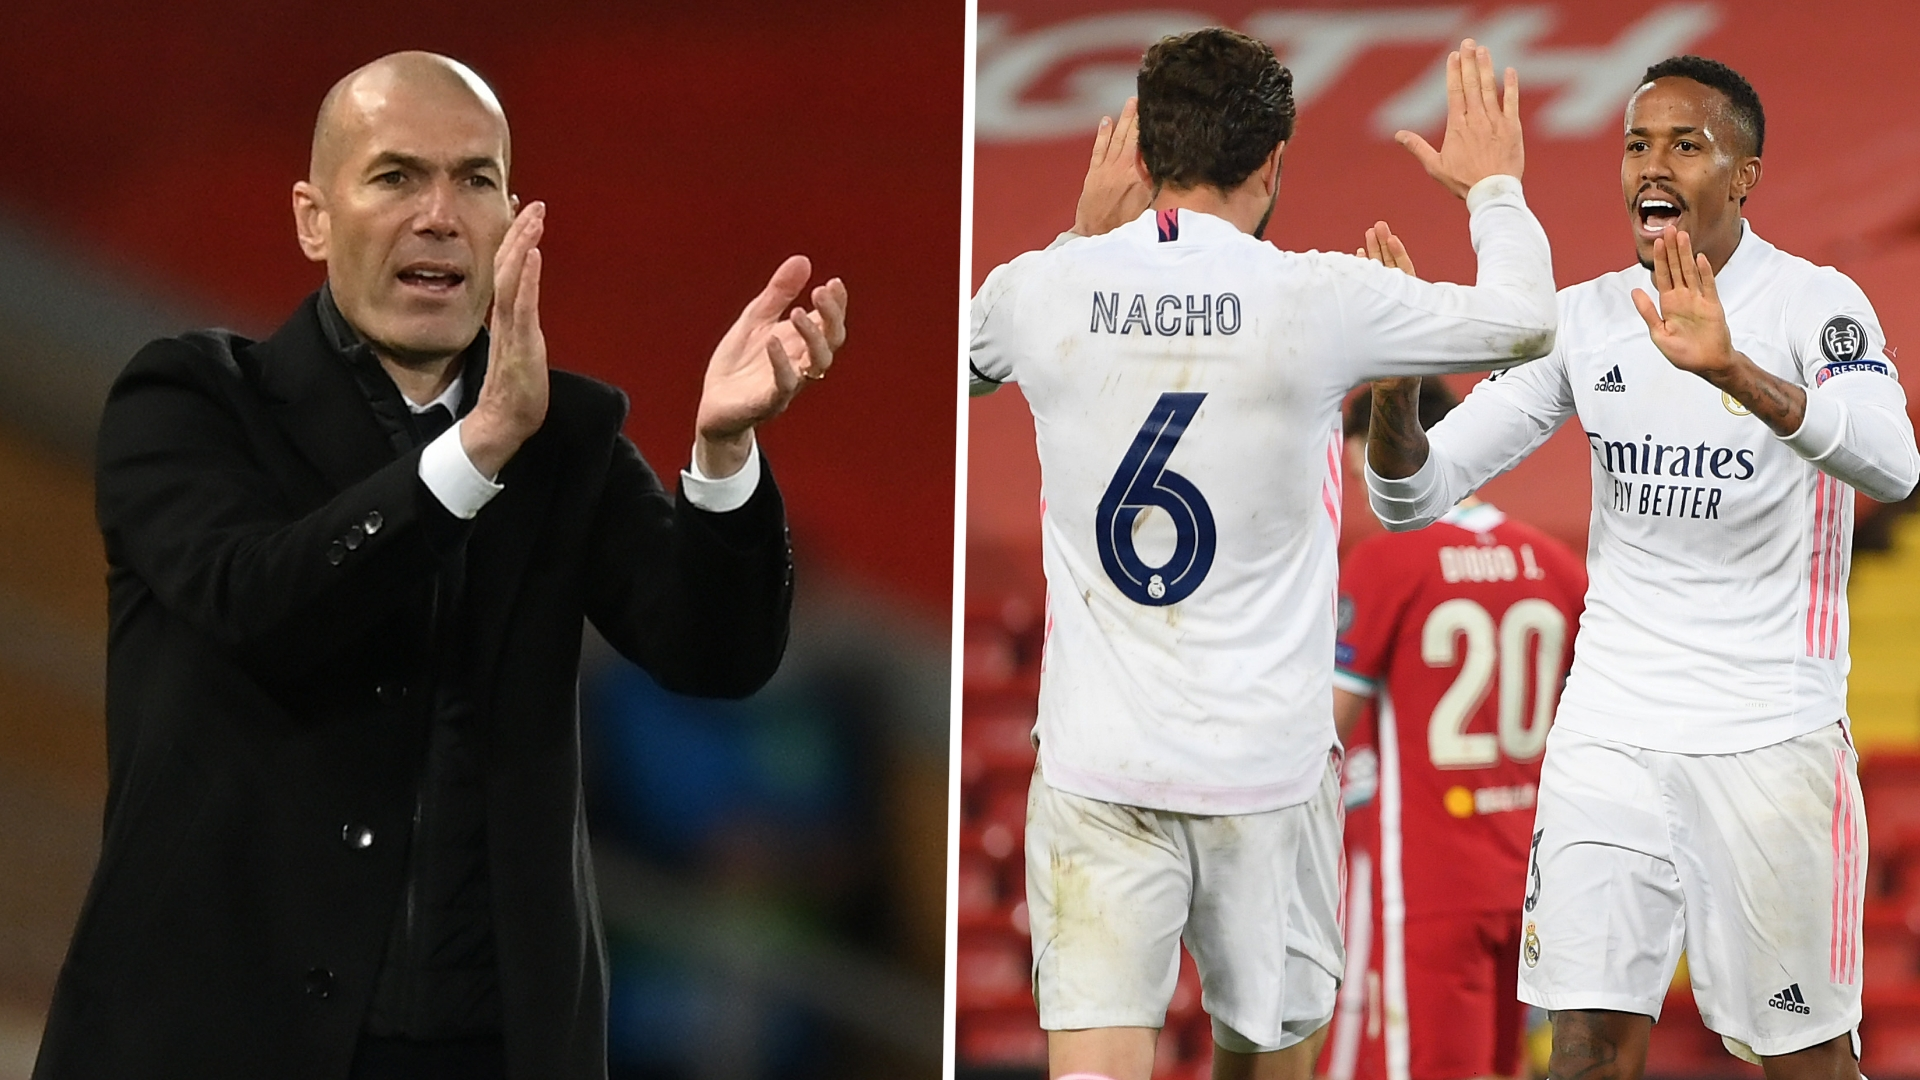 Zidane's greatest strength shines through as unlikely heroes guide Real Madrid past Liverpool